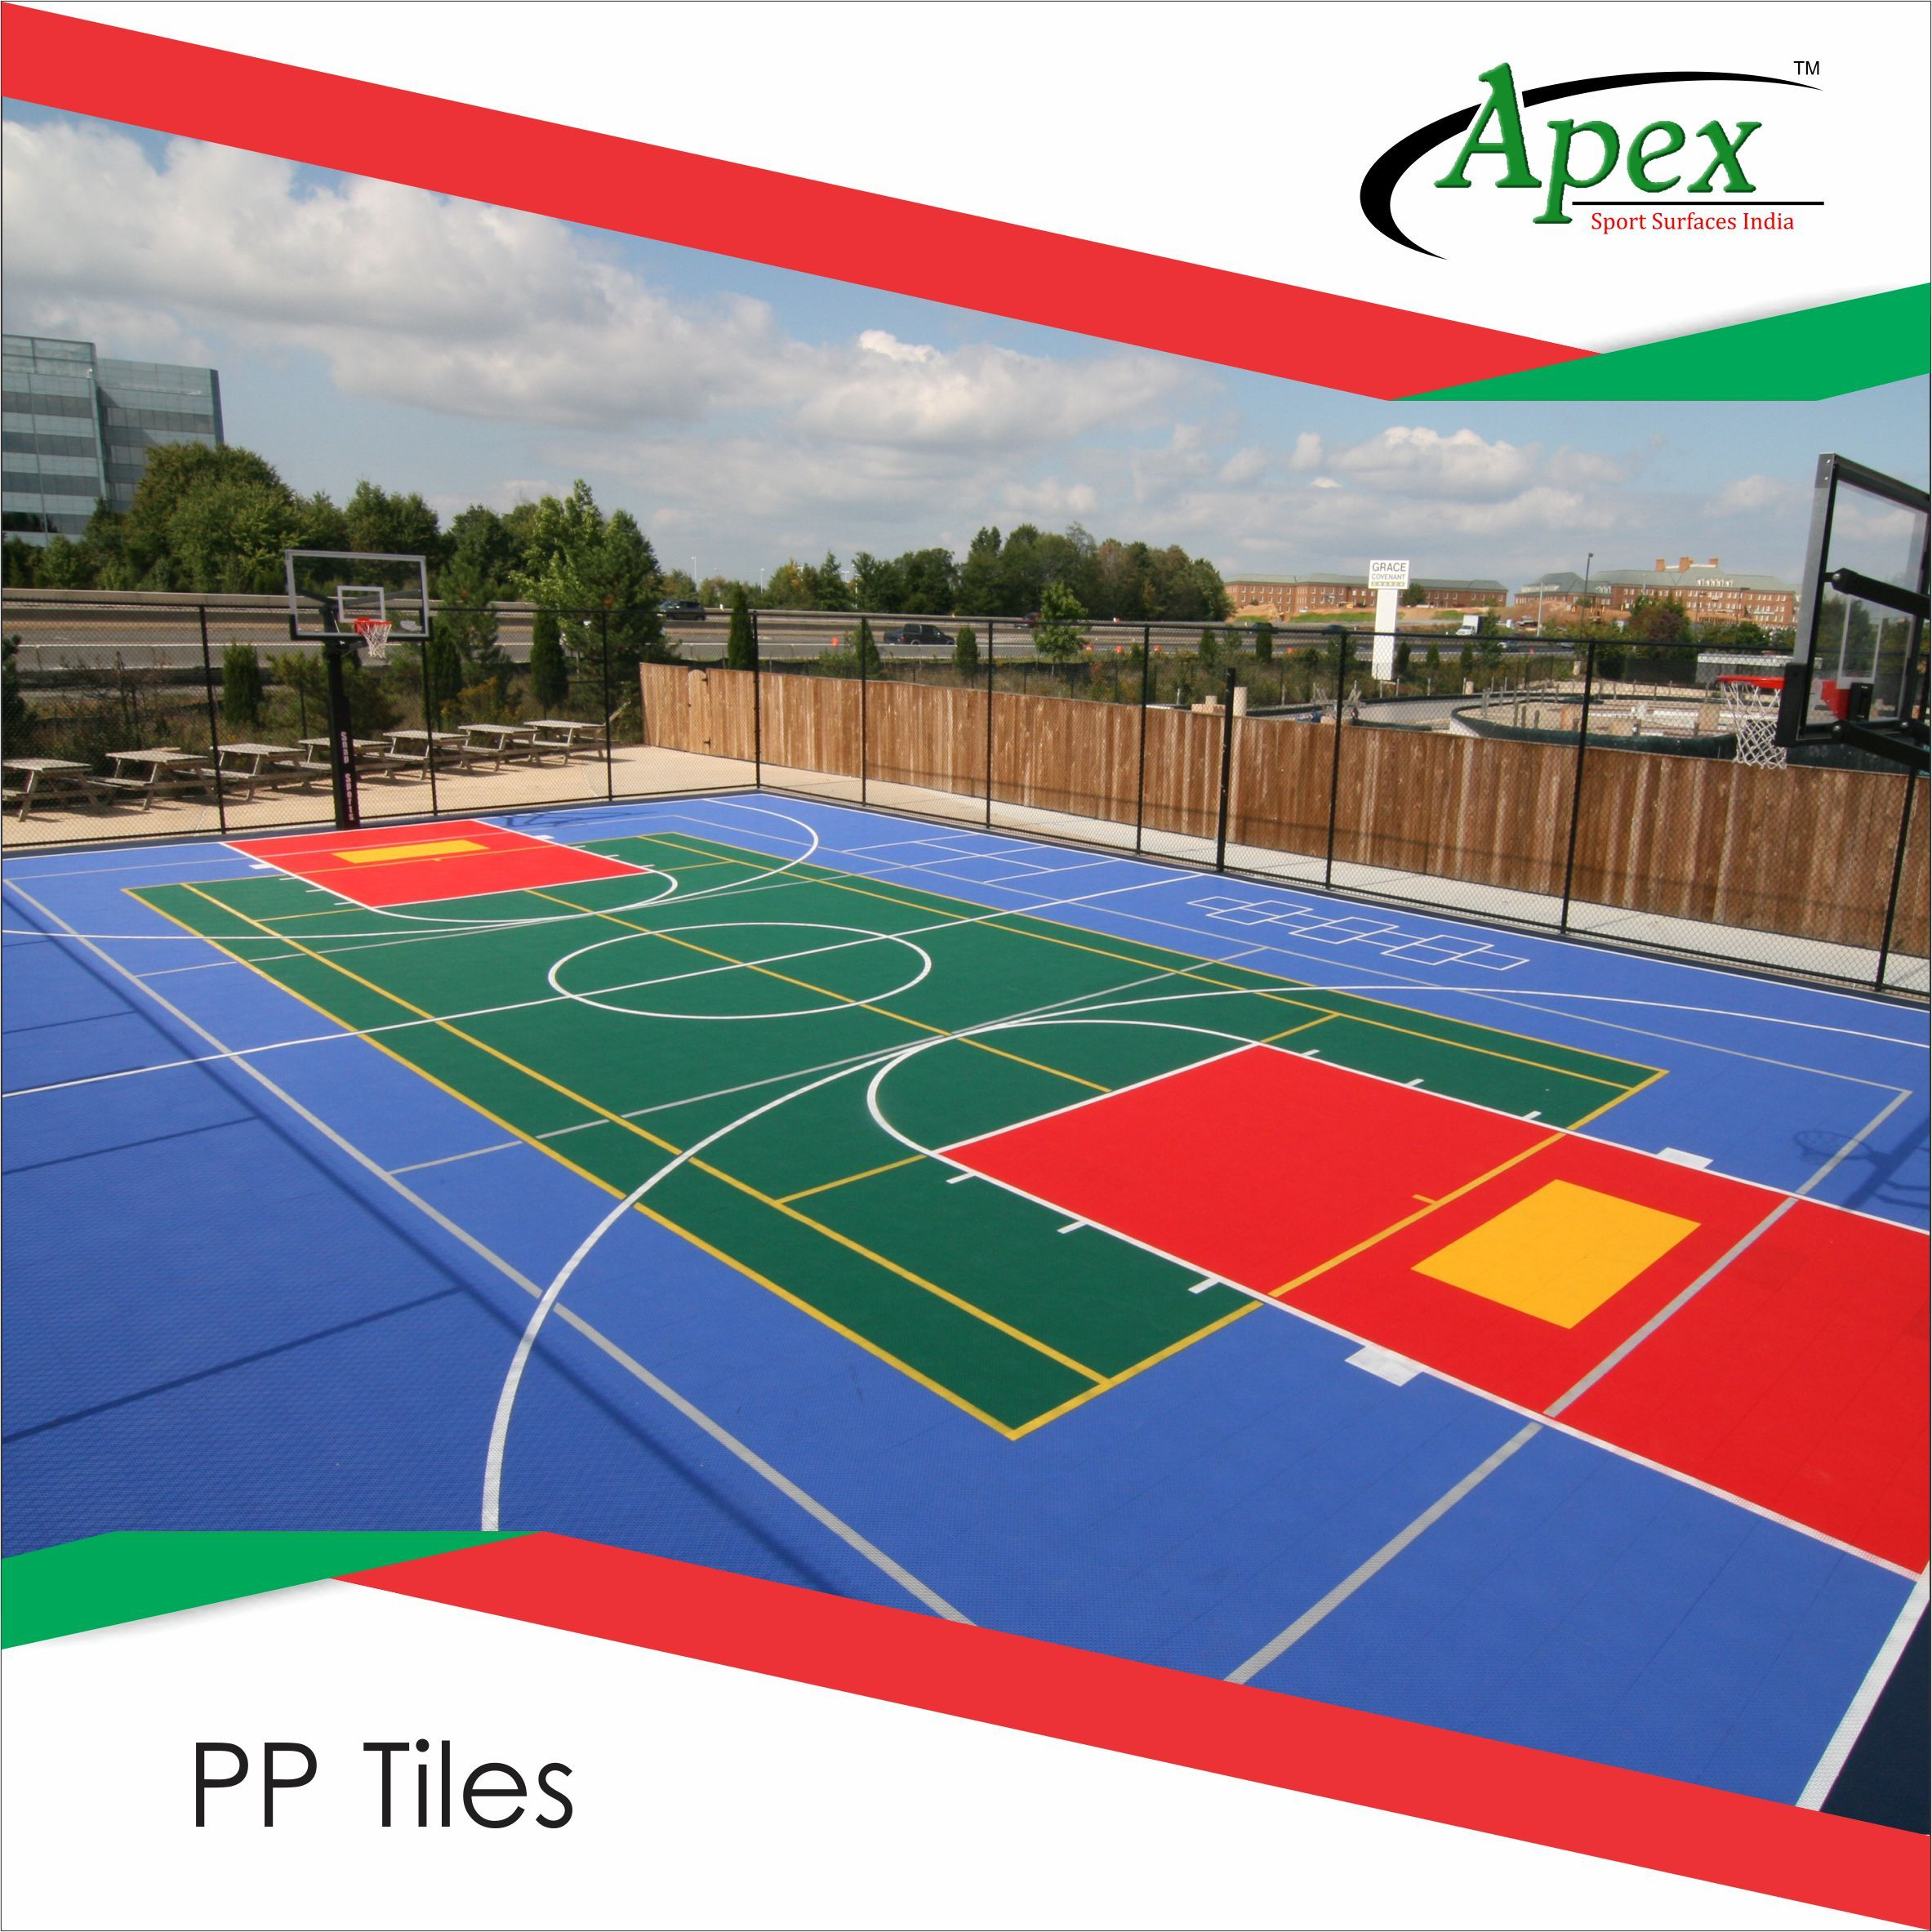 Pp Tiles From Apex Sports Clear Visible Line Markings Very Easy To Clean With A Strong Wear And Tear Resistance Apexs Sports Fun Sports Outdoor Inspirations